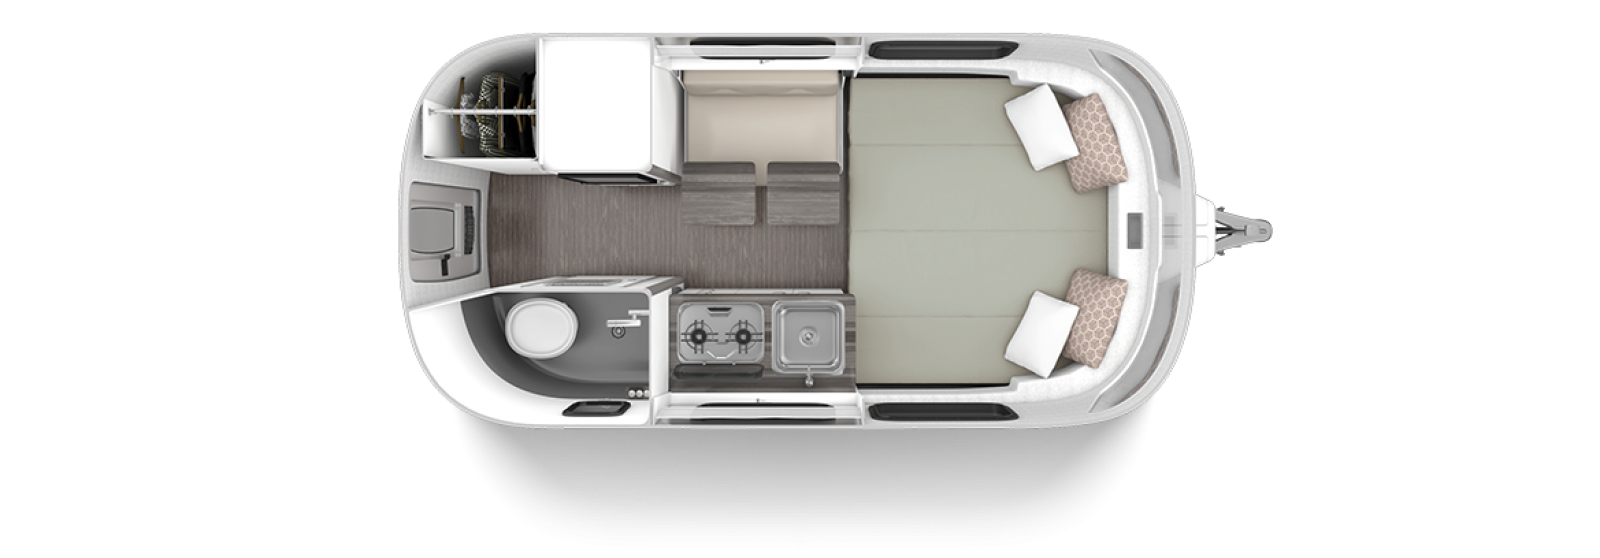 Nest by Airstream 2020 Floor Plan Wingspan White